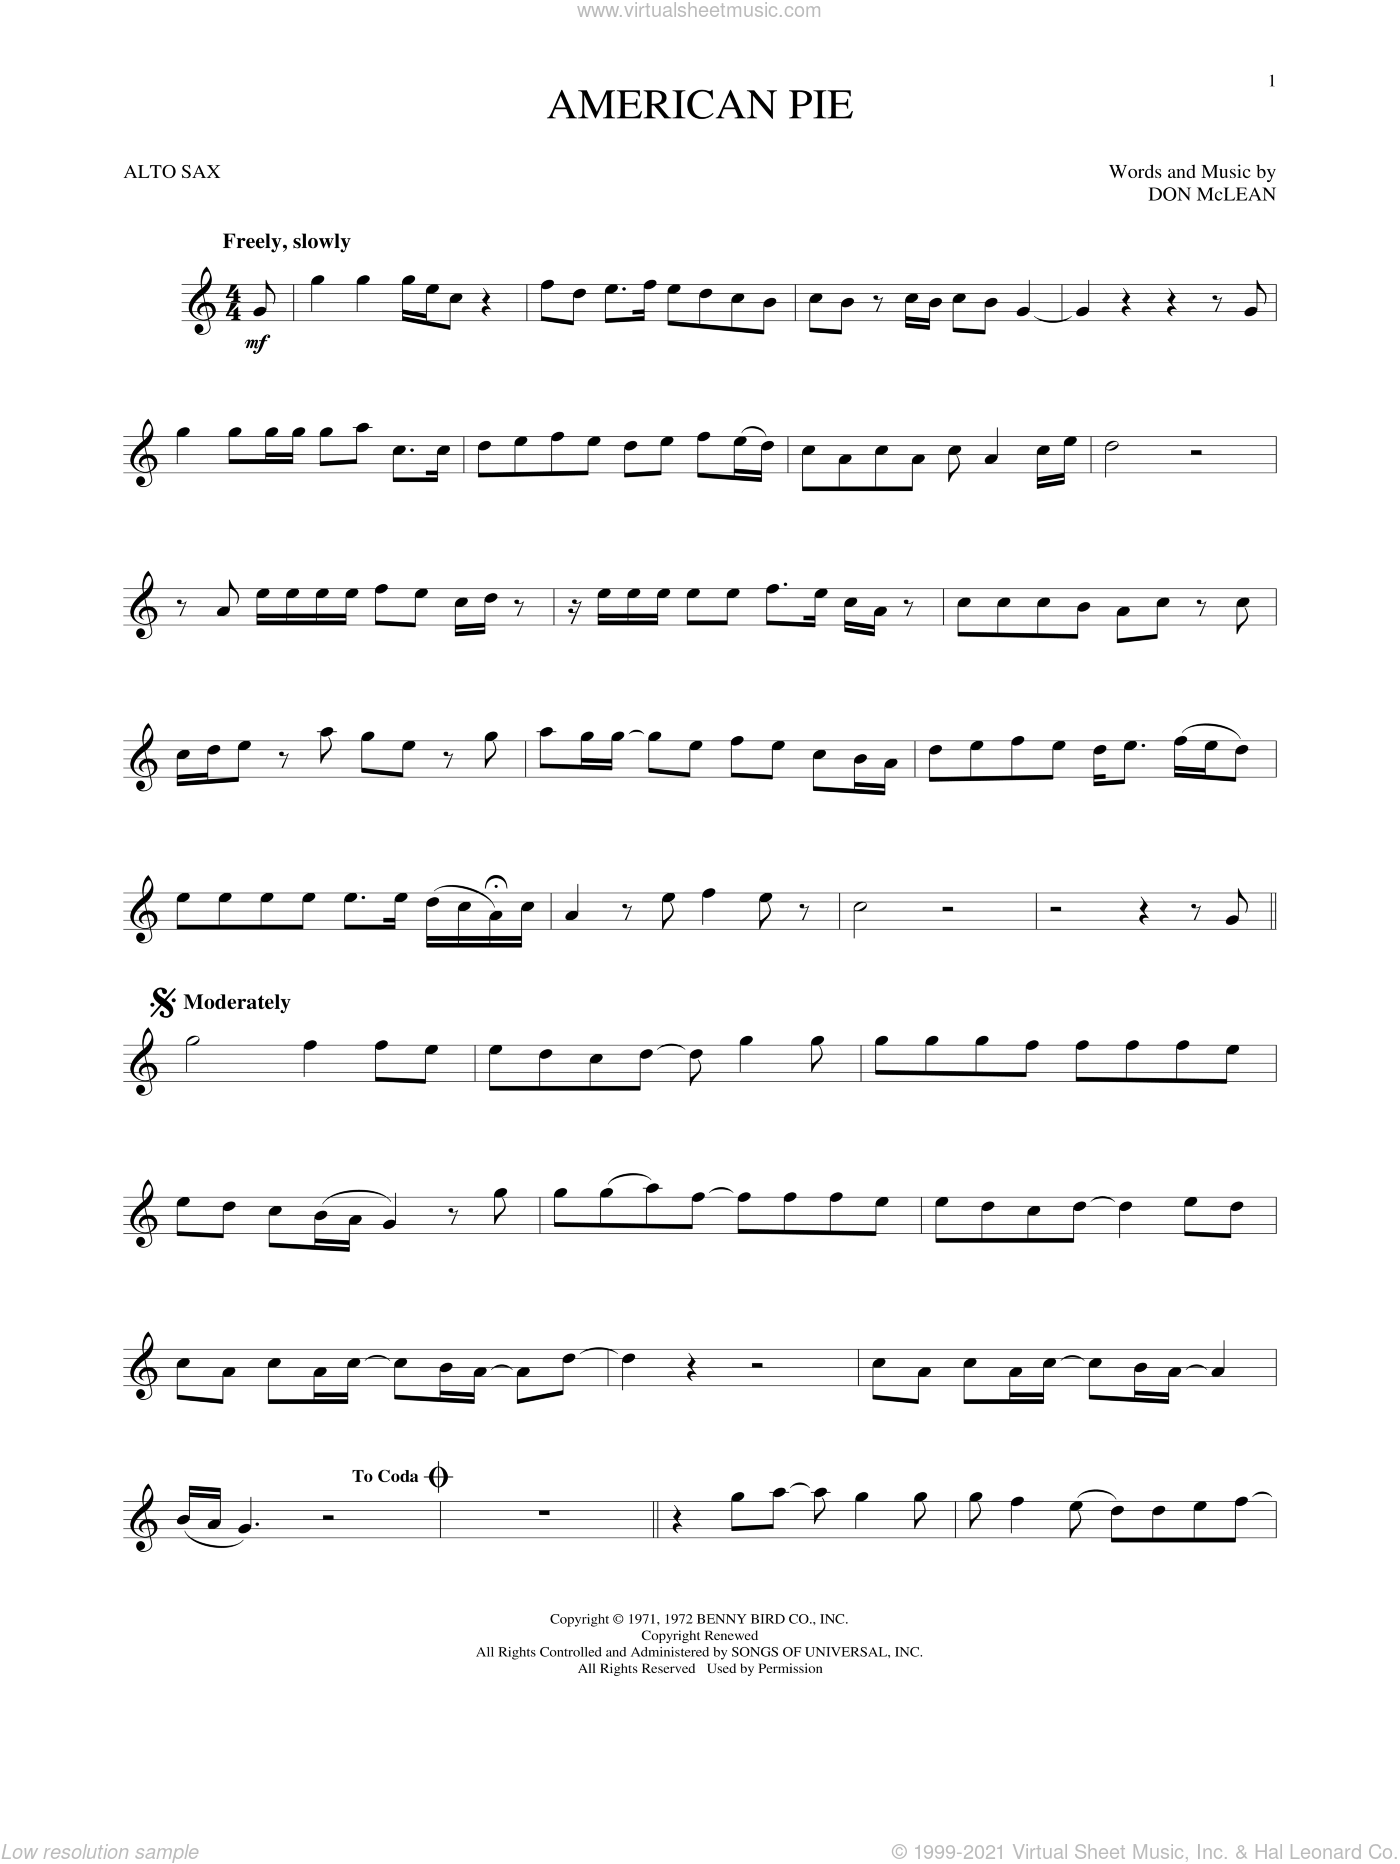 American Pie sheet music for alto saxophone solo by Don McLean, intermediate skill level